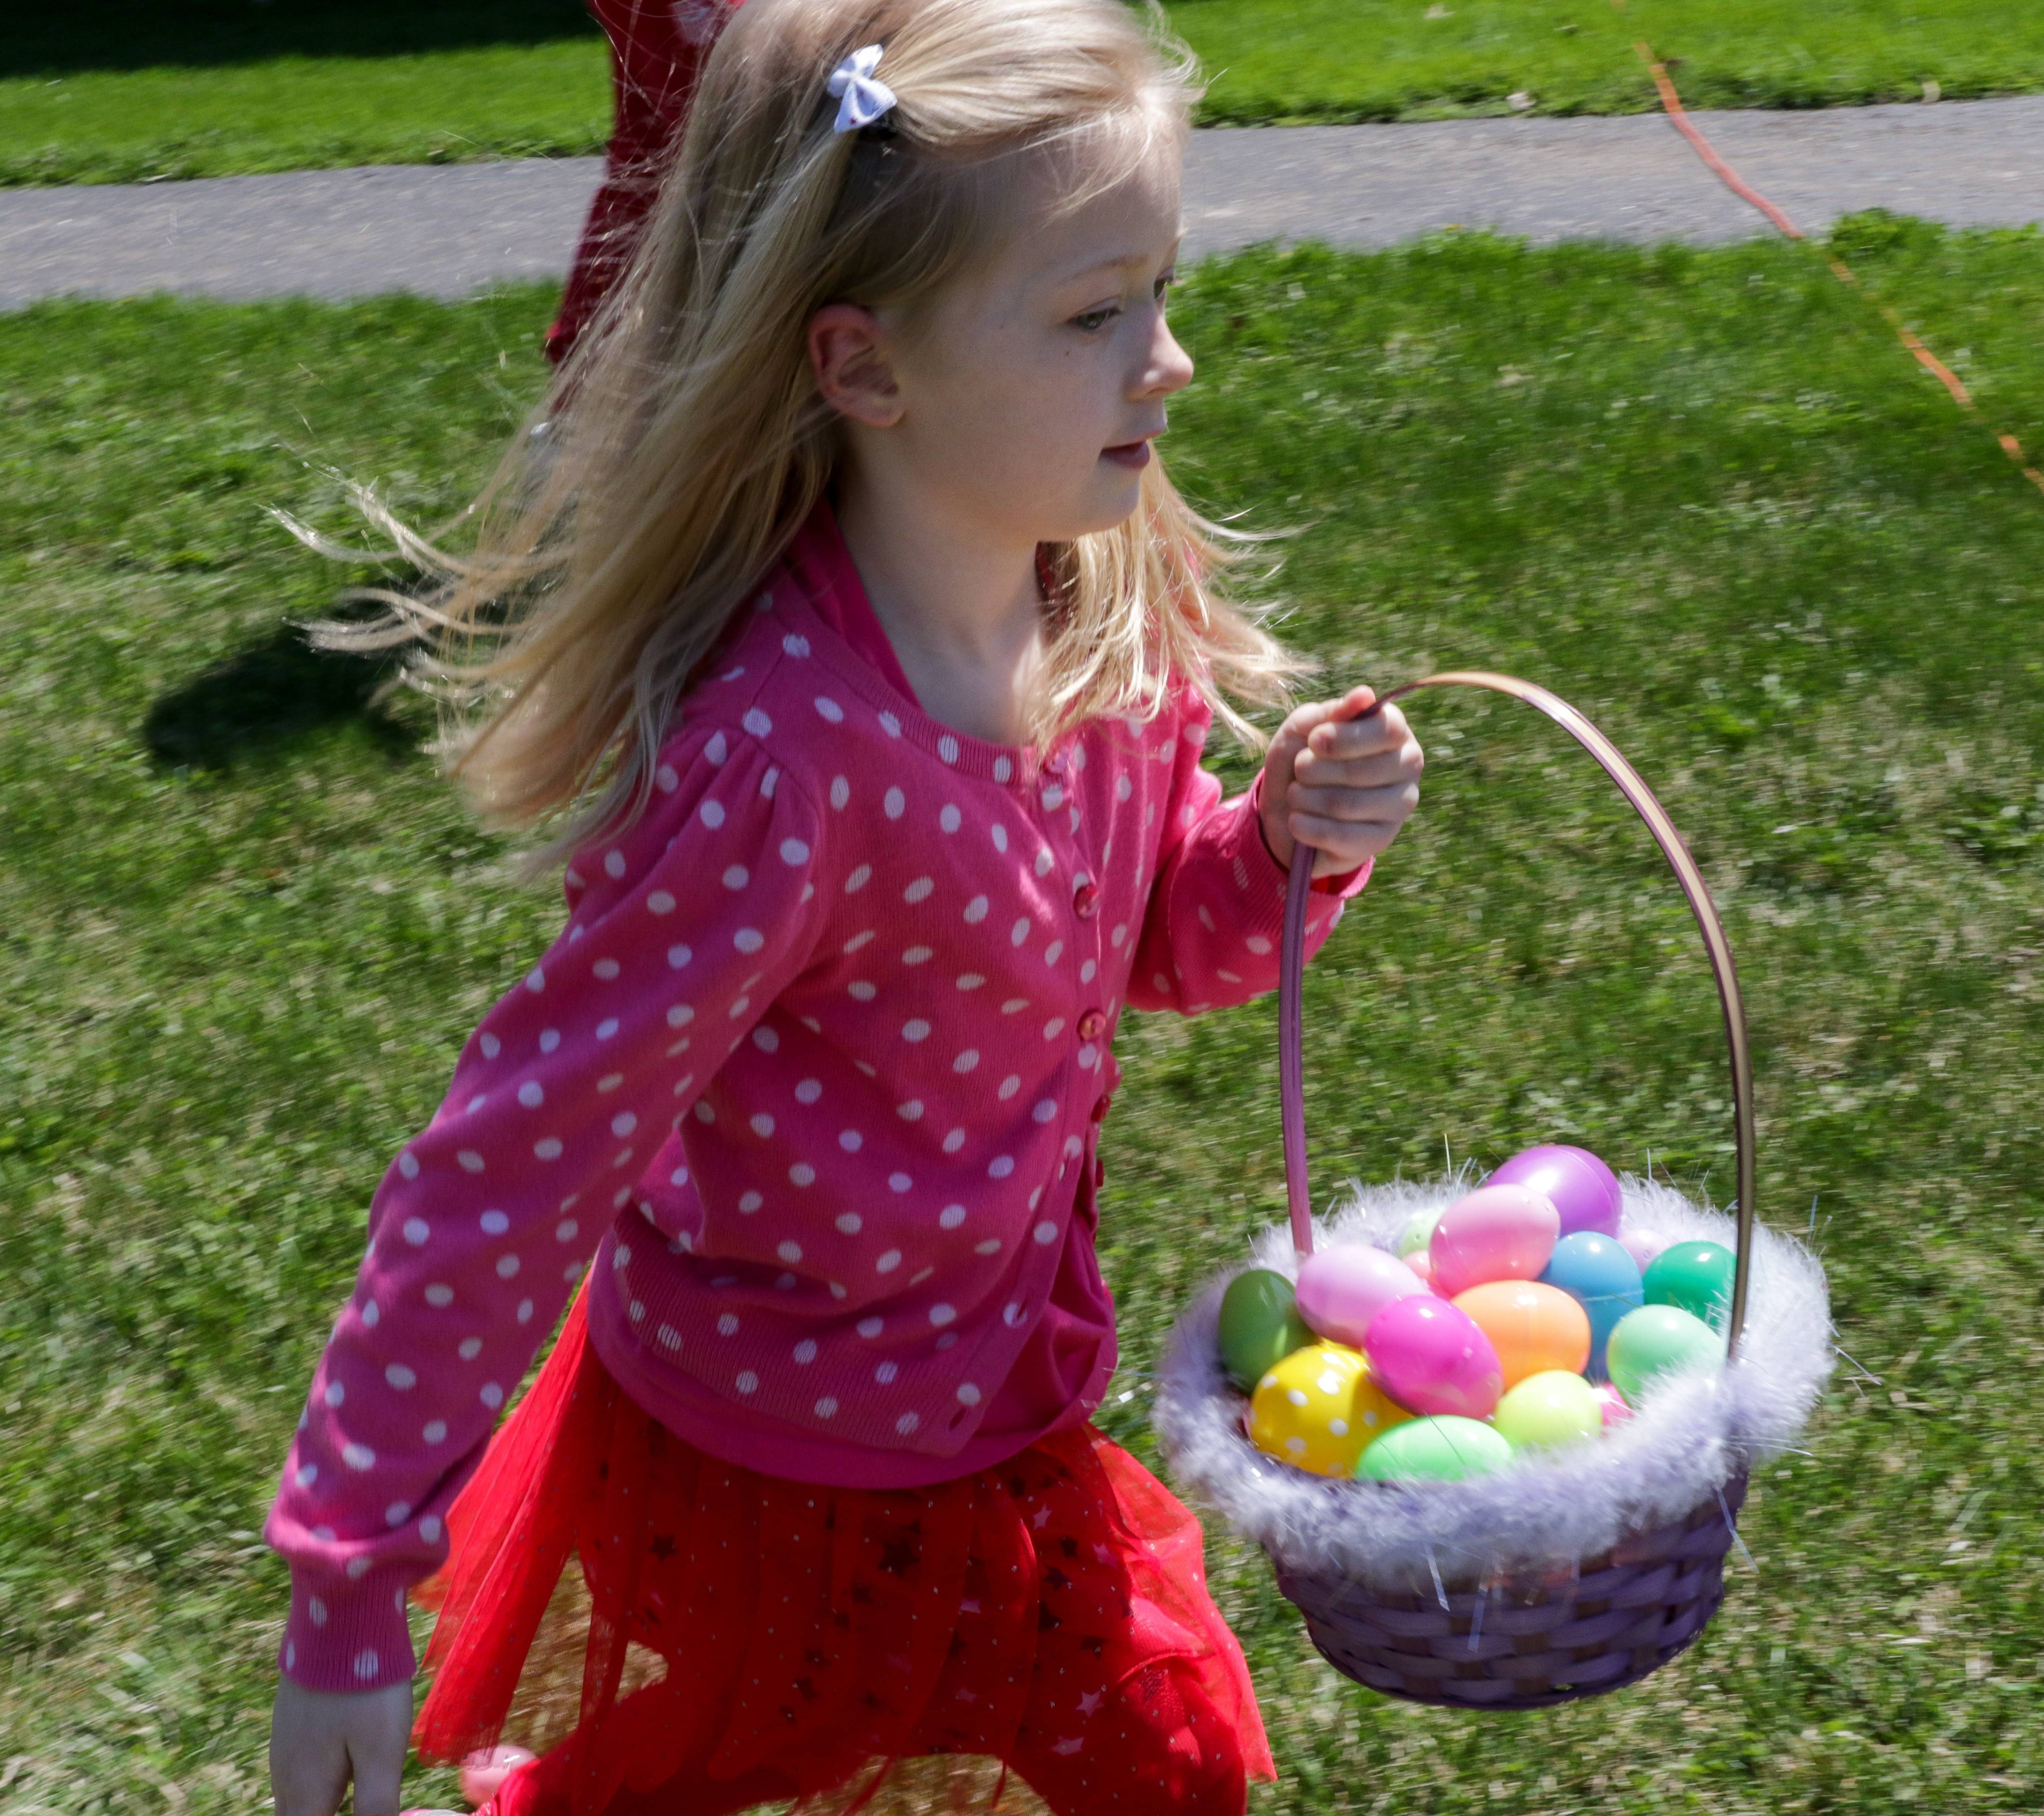 Alice Popa, 7, of Rolling Meadows collects a basketful of eggs Sunday during the Easter egg hunt at Cardinal Drive Church of Christ in Rolling Meadows.